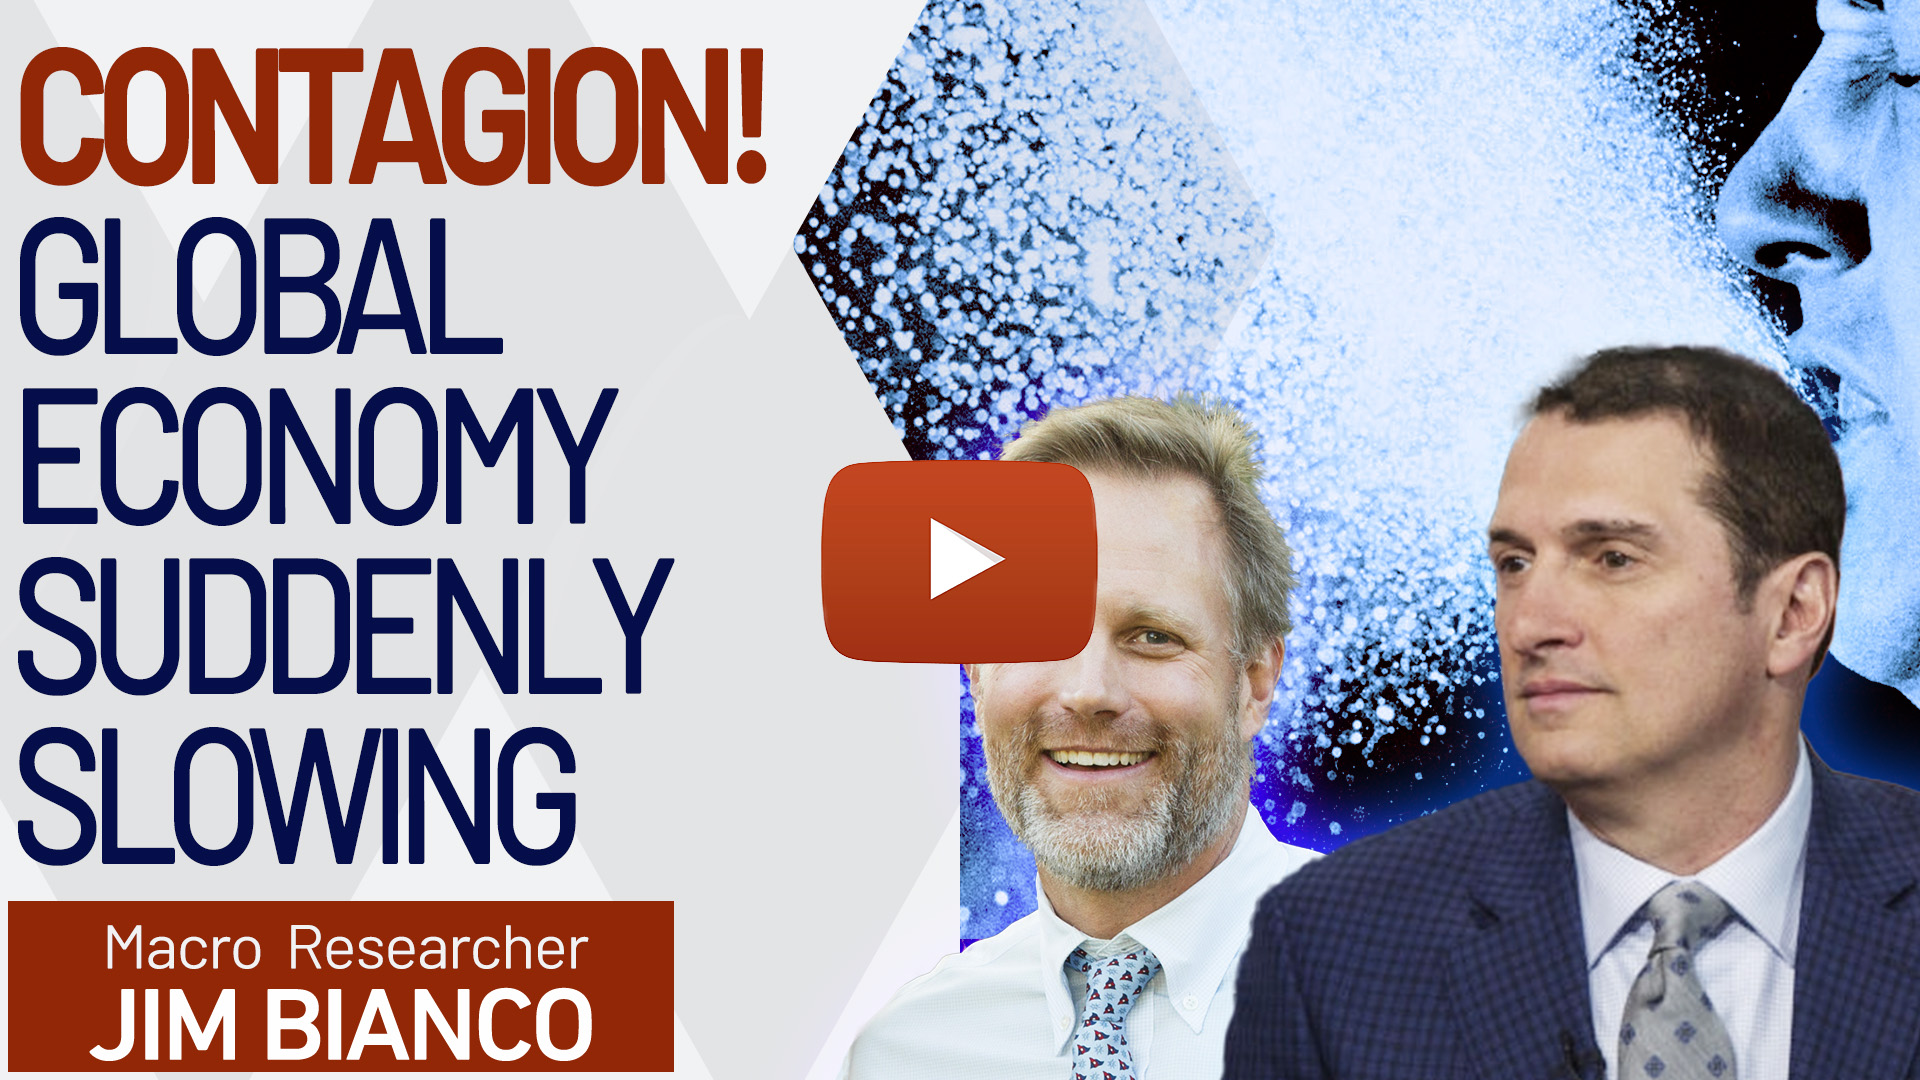 Contagion! Global Economy Suddenly Slowing